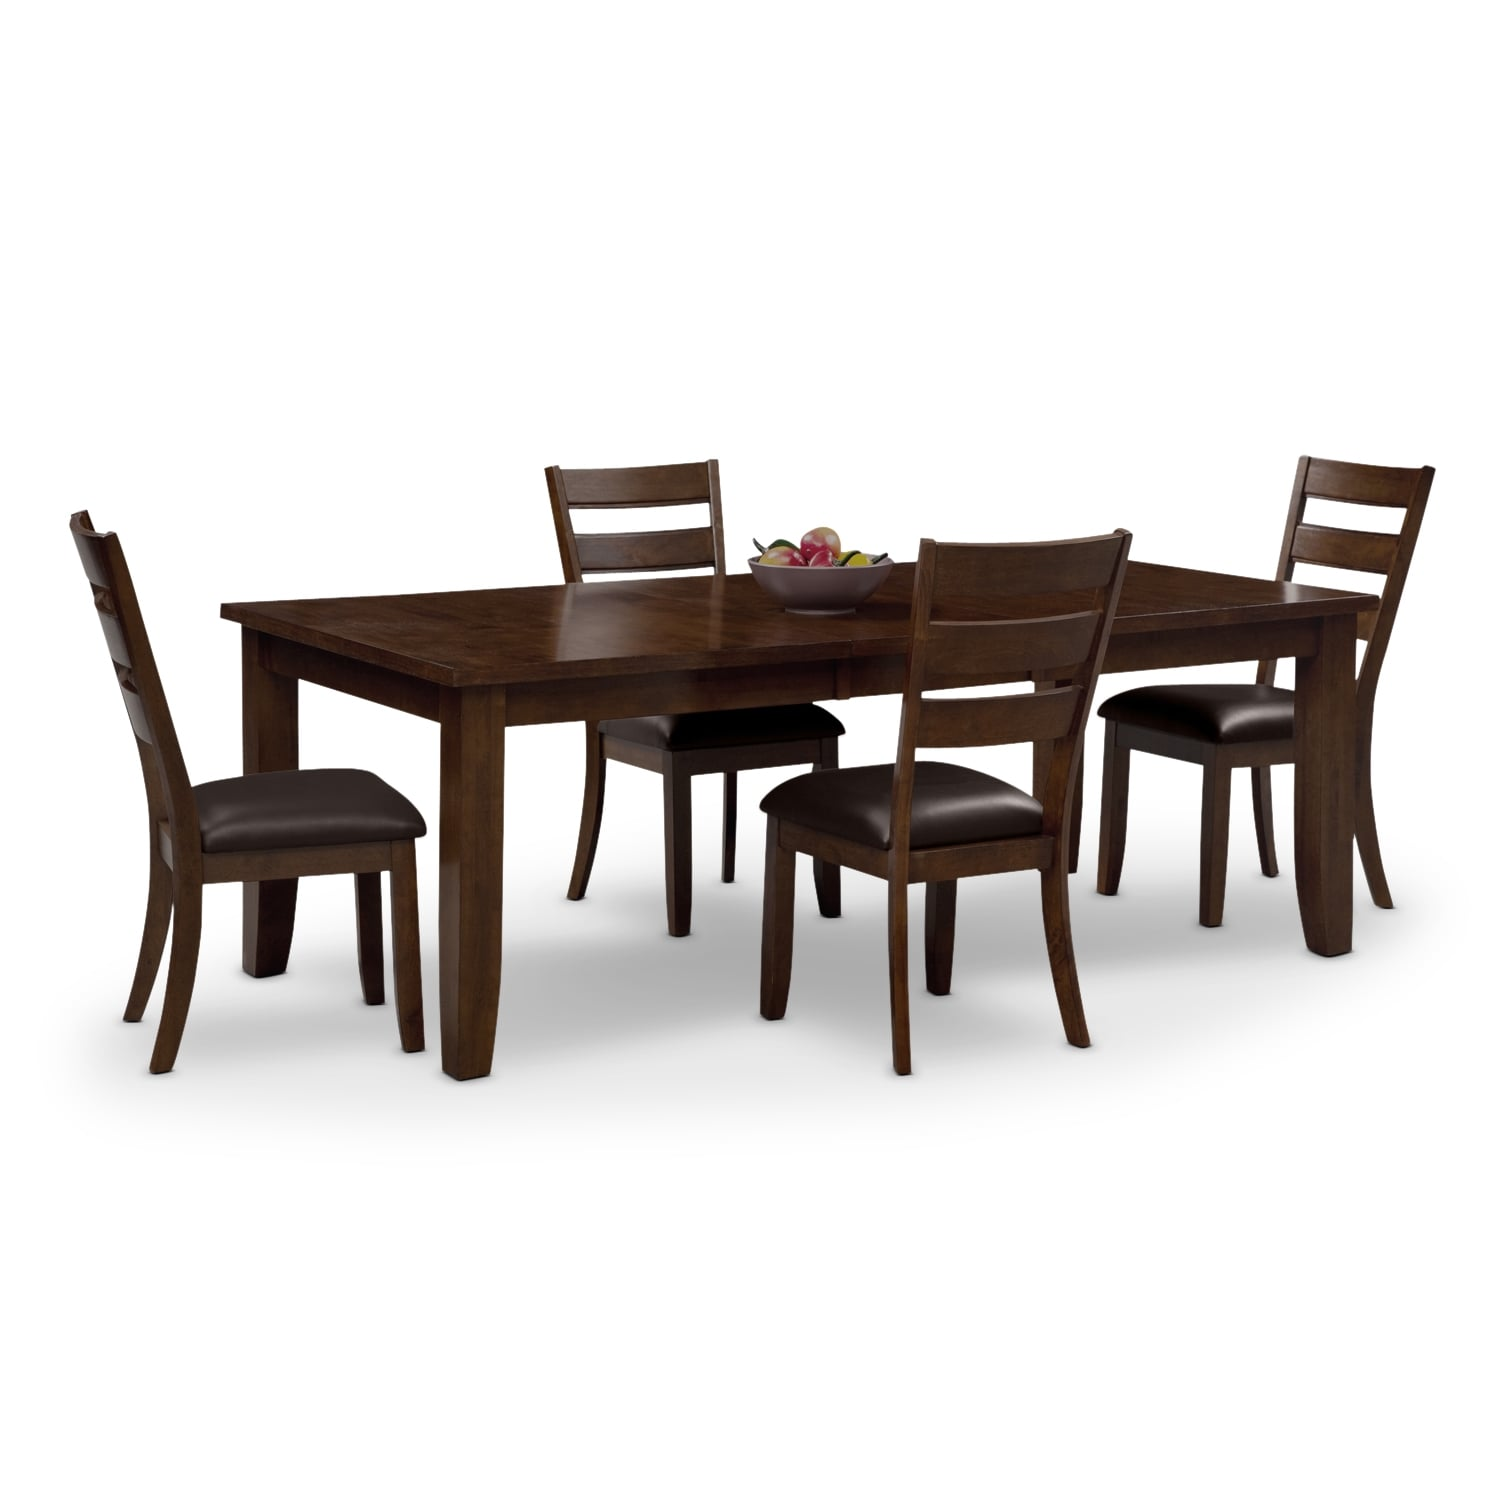 Abaco 5 Pc. Dinette